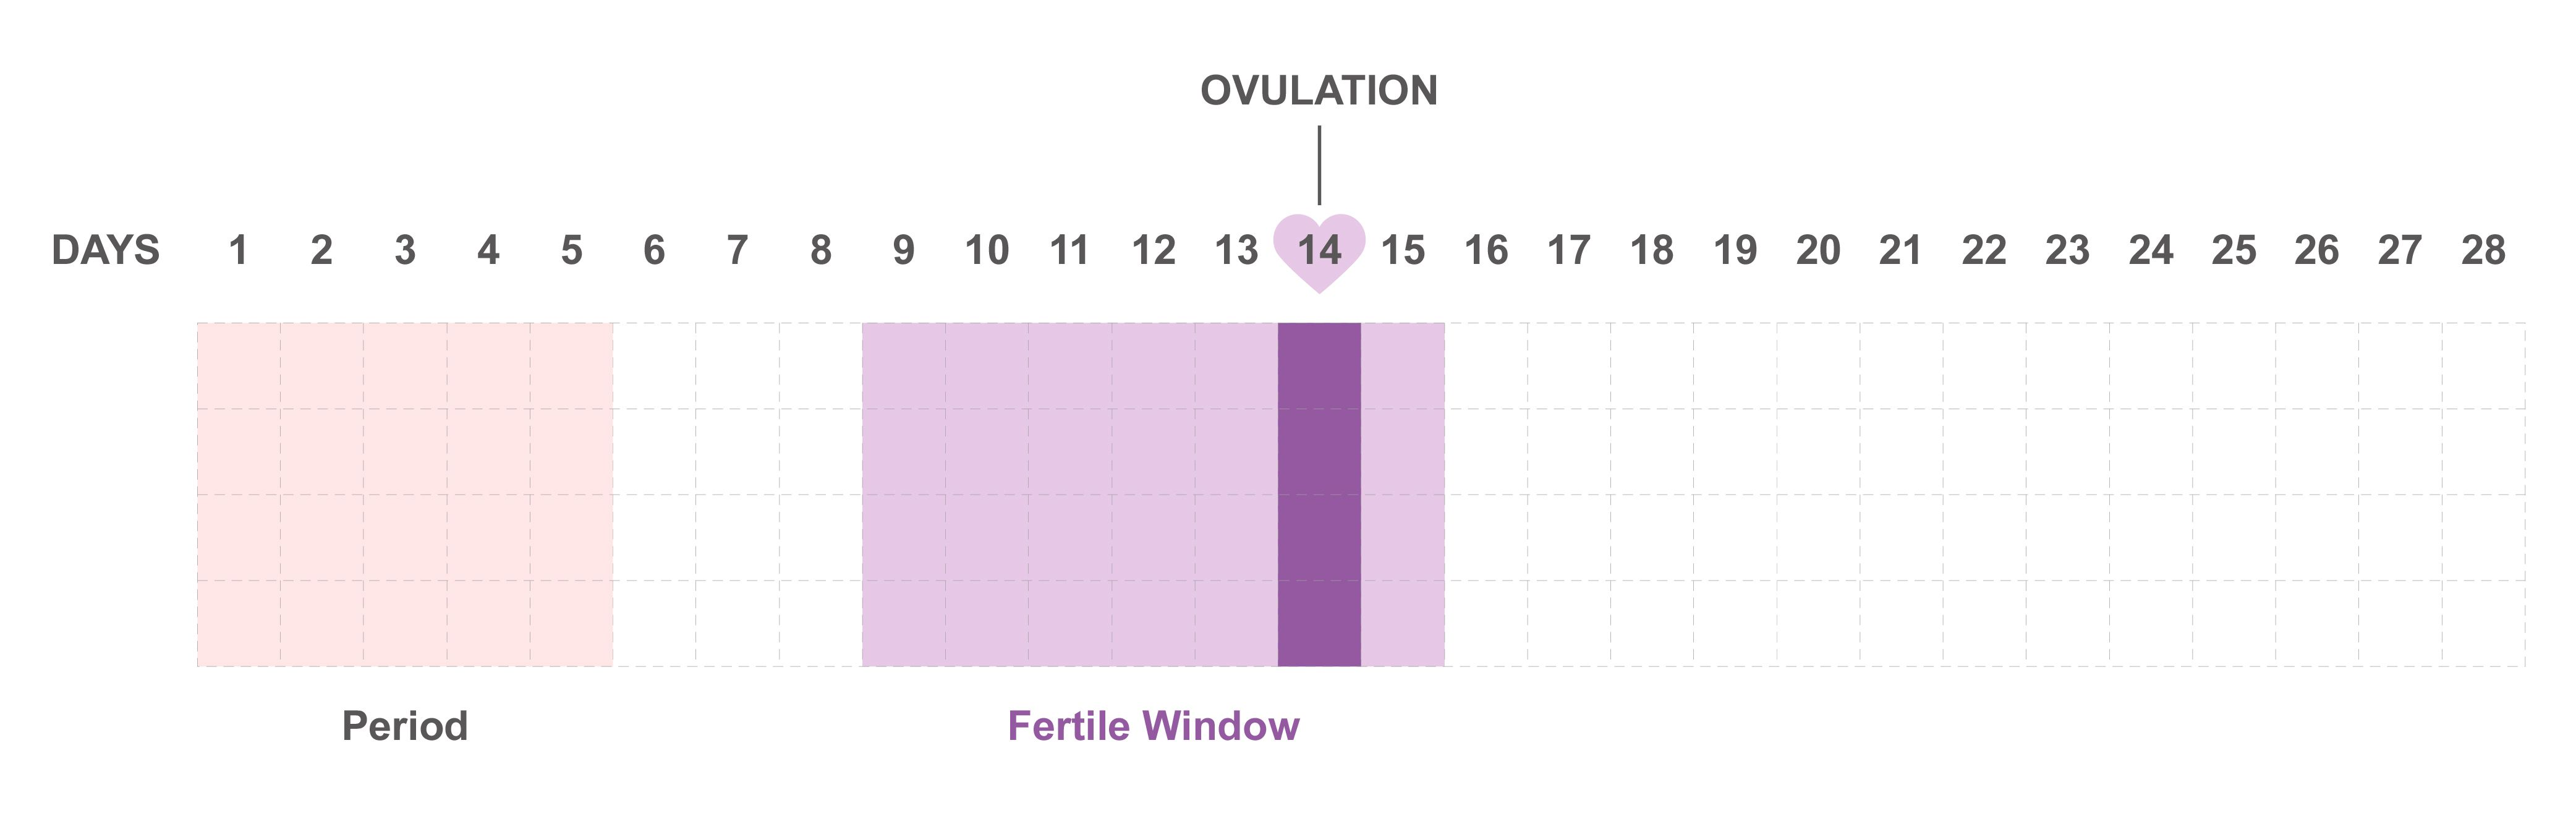 When Are Your Safe Days? NATURAL CONTRACEPTION BIRTH